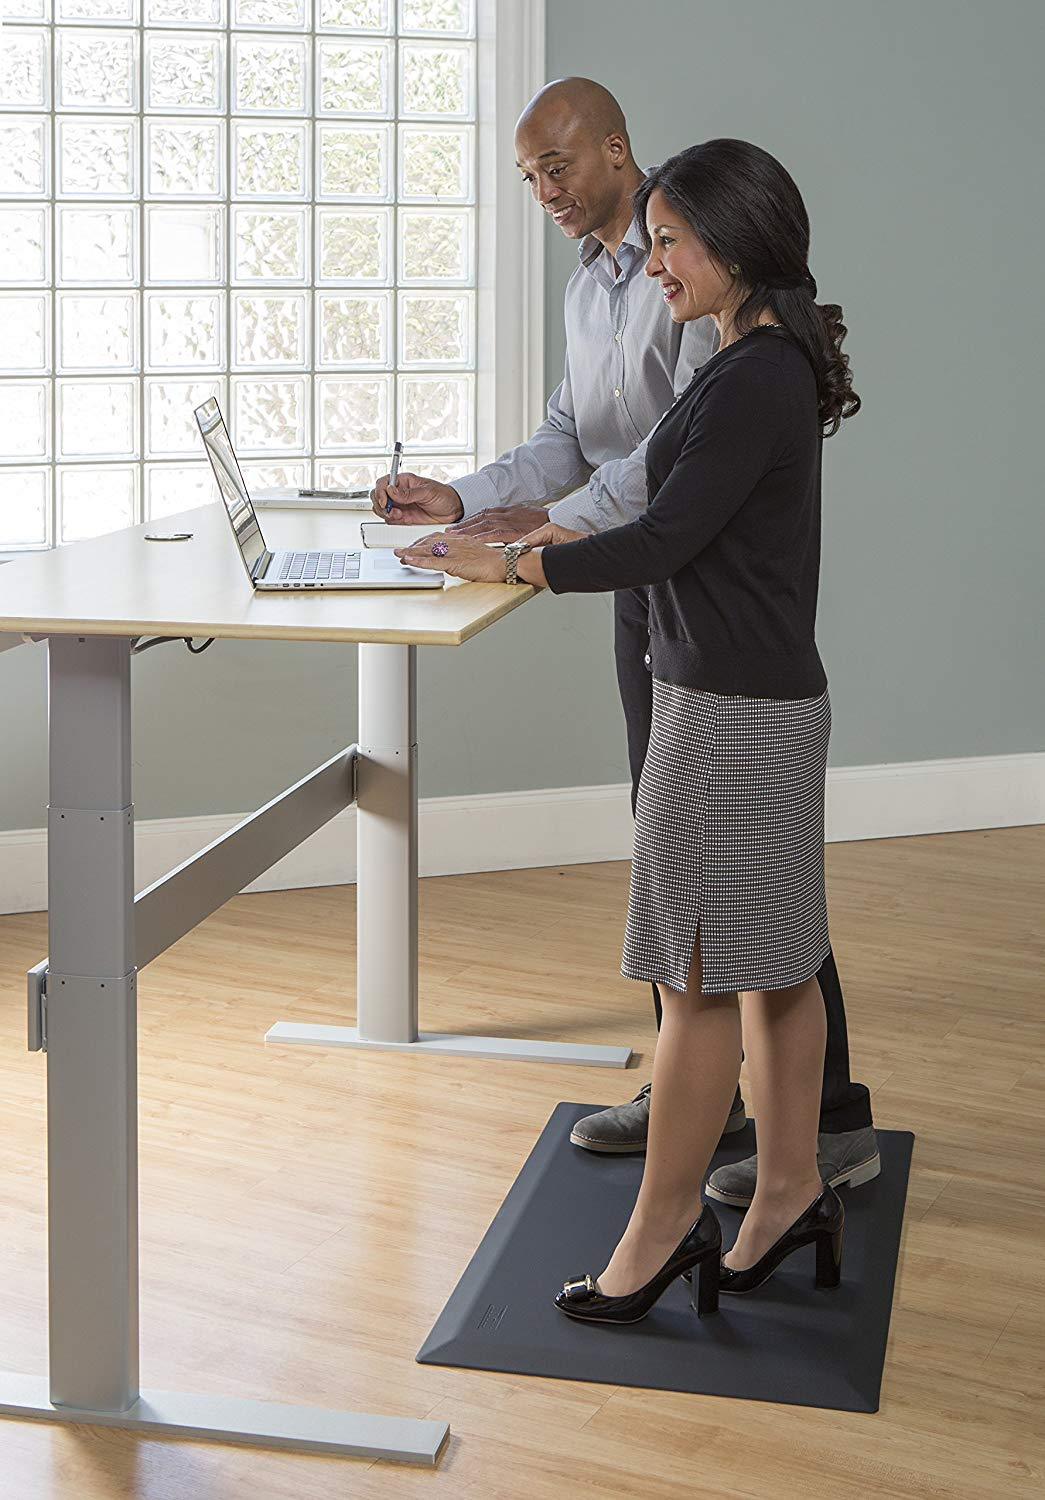 Imprint CumulusPRO CumulusPRO commercial grade Standing Desk Anti-Fatigue Mat